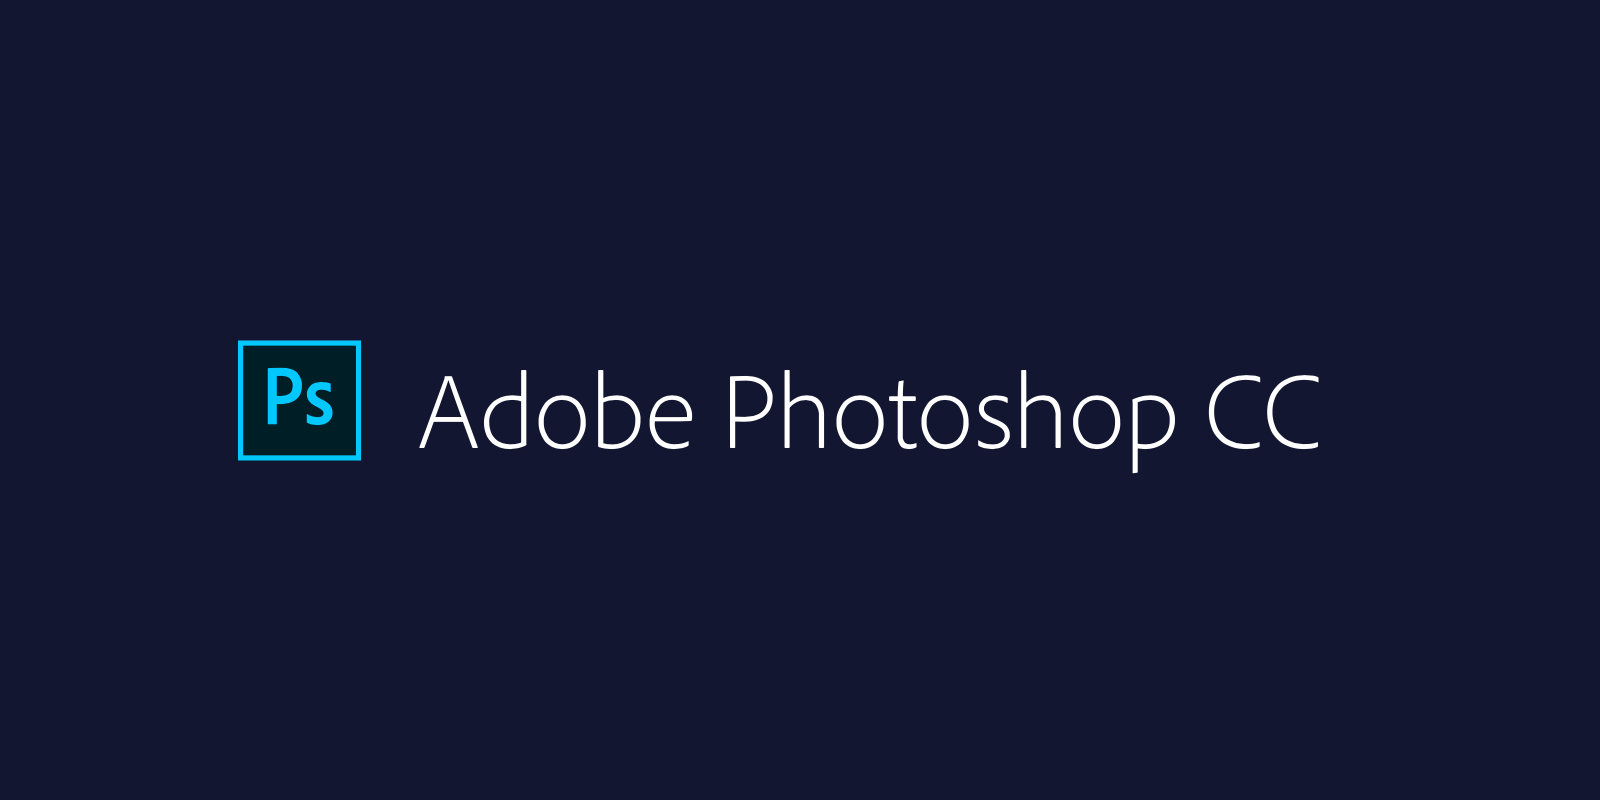 Adobe Photoshop Logo - Photoshop Logo PNG